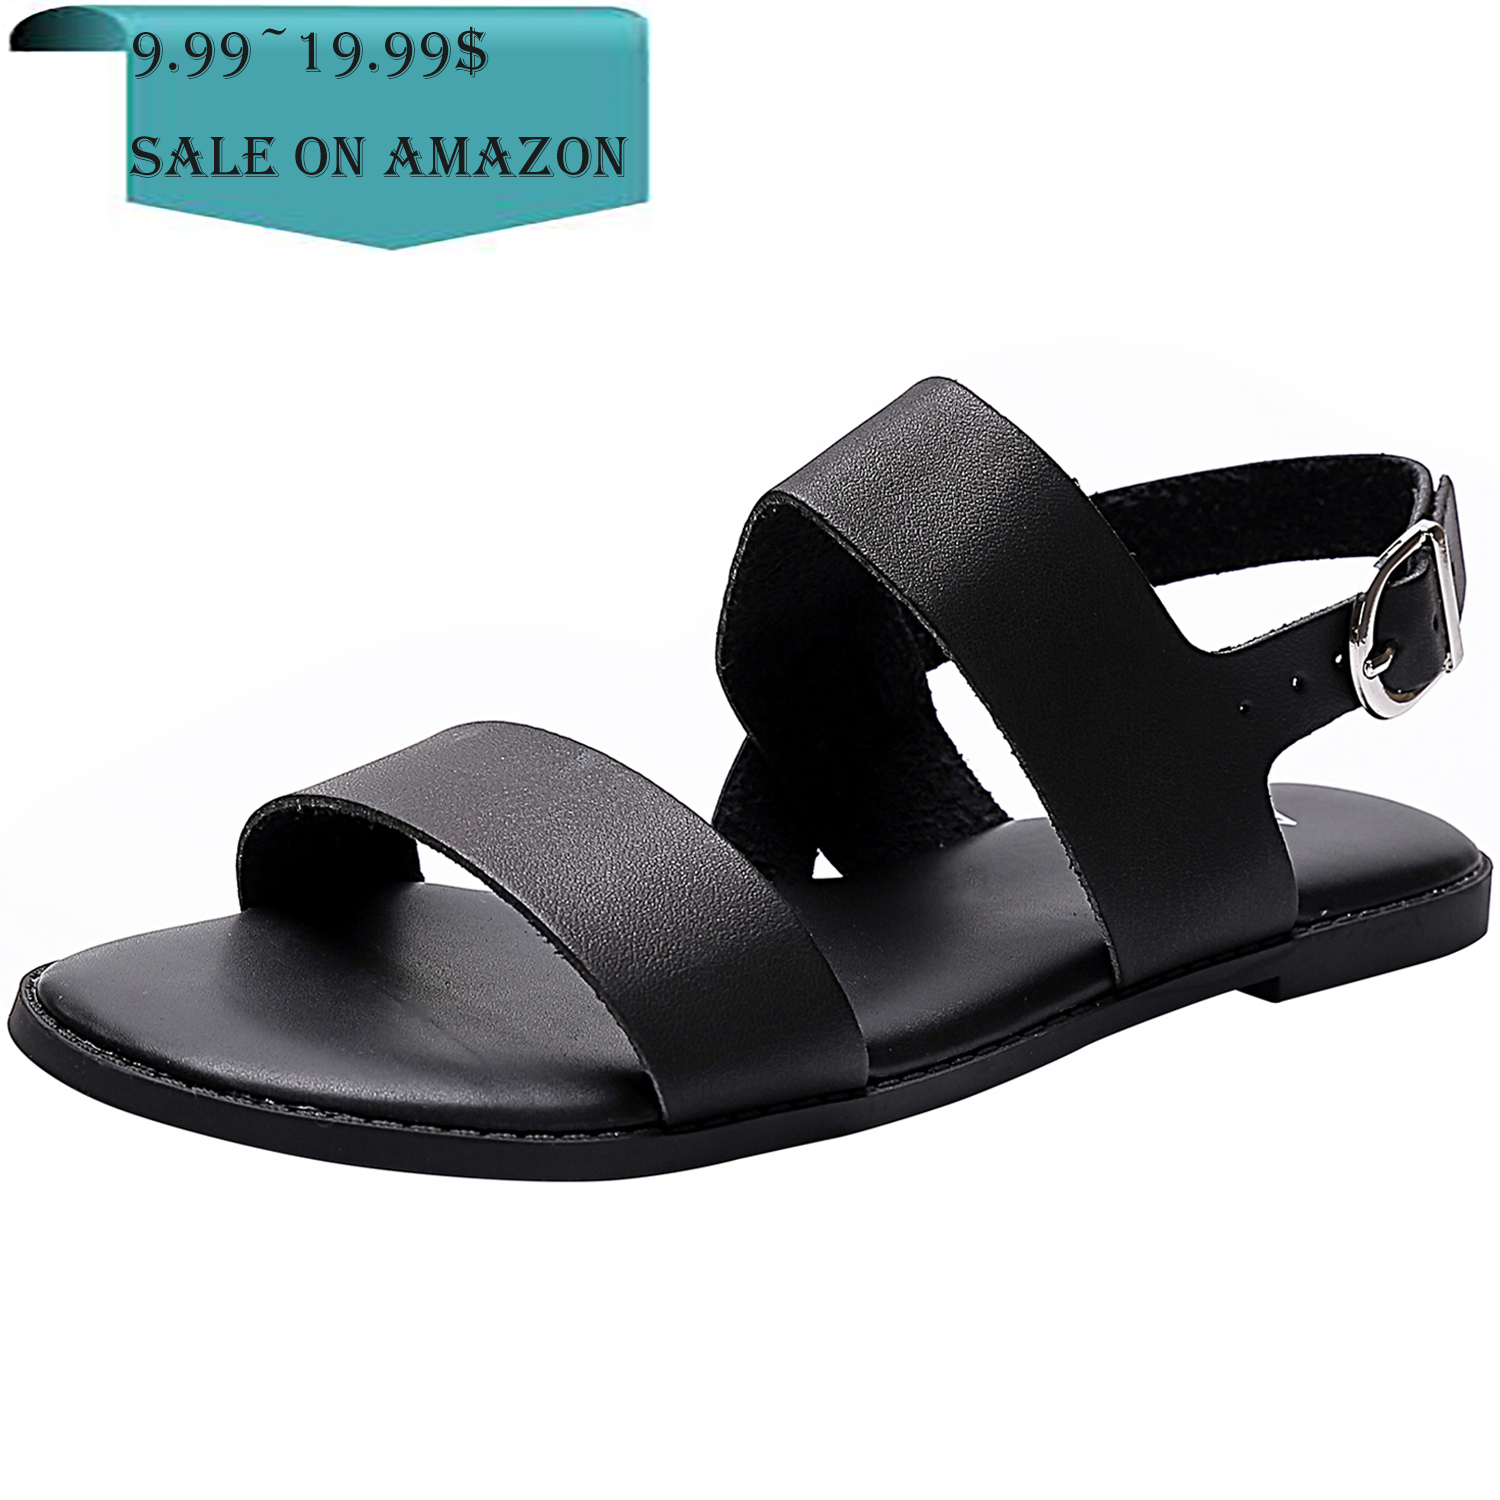 ce1ae94214f4 US  29.99 - Women s Wide Width Flat Sandals - Comfortable Open Toe Ankle  Strap Flexible Casual Summer Shoes - www.luoika-us.com